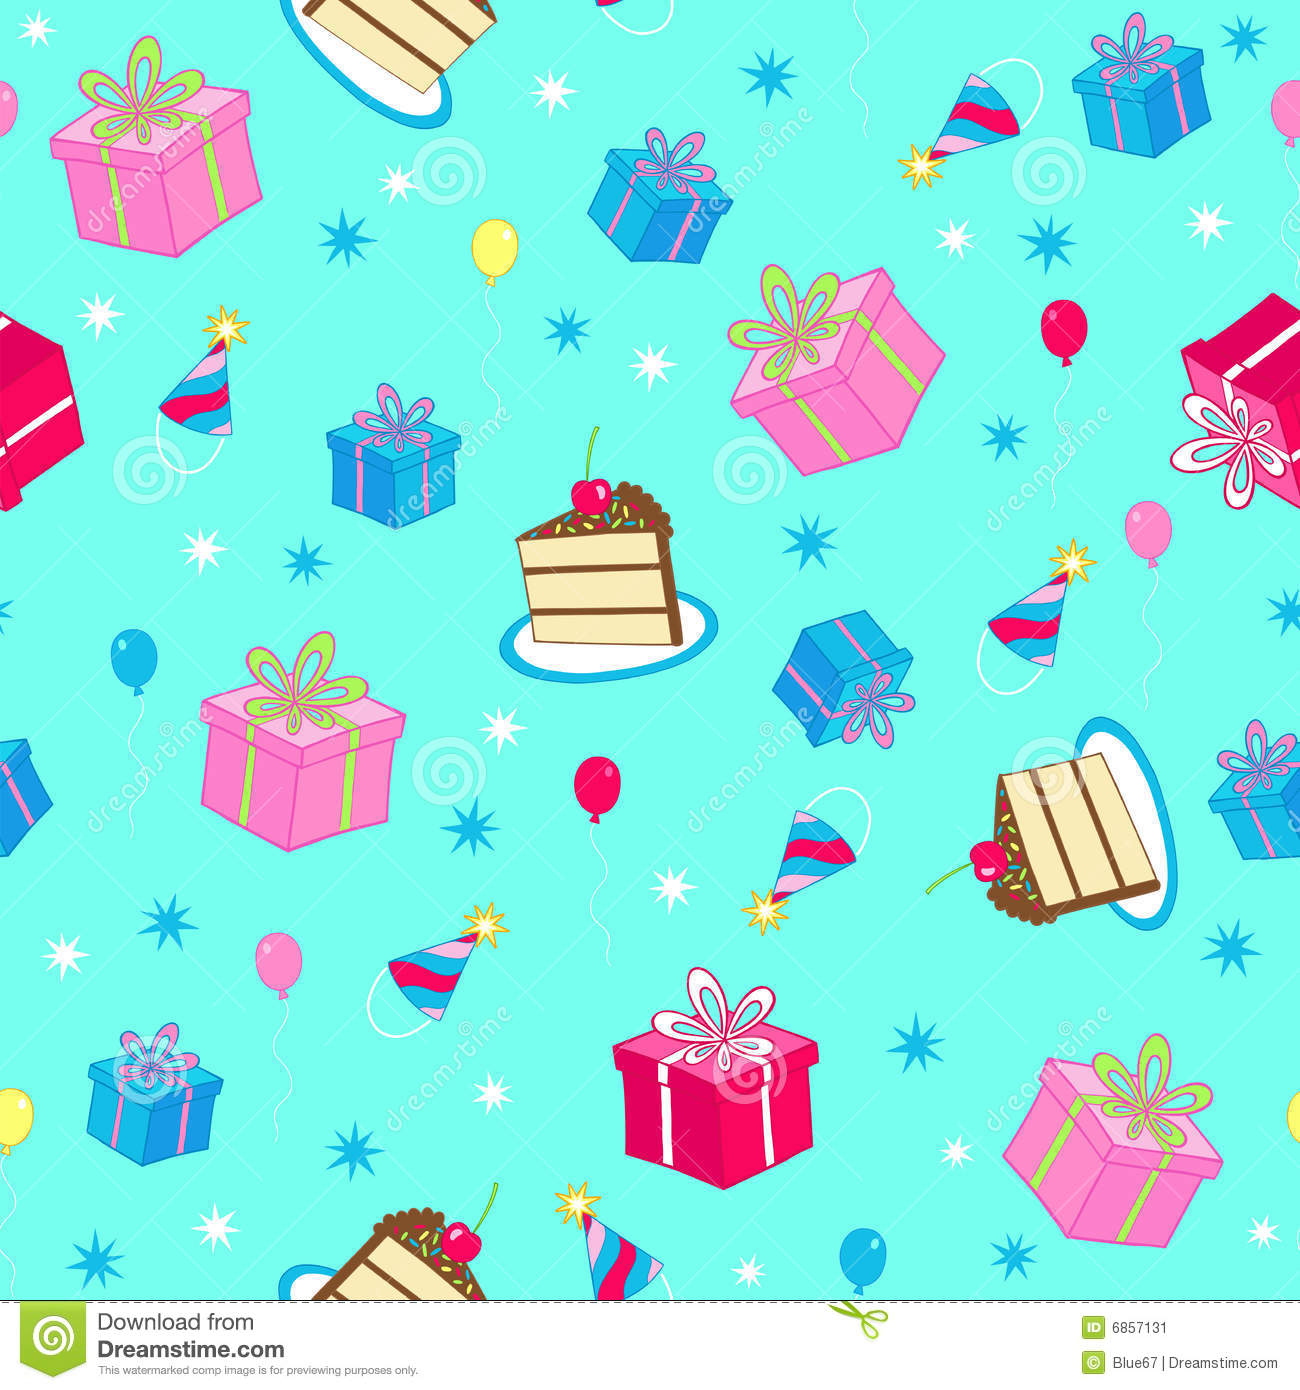 Birthday Party Seamless Repeat Pattern Vector Stock Image - Image ...